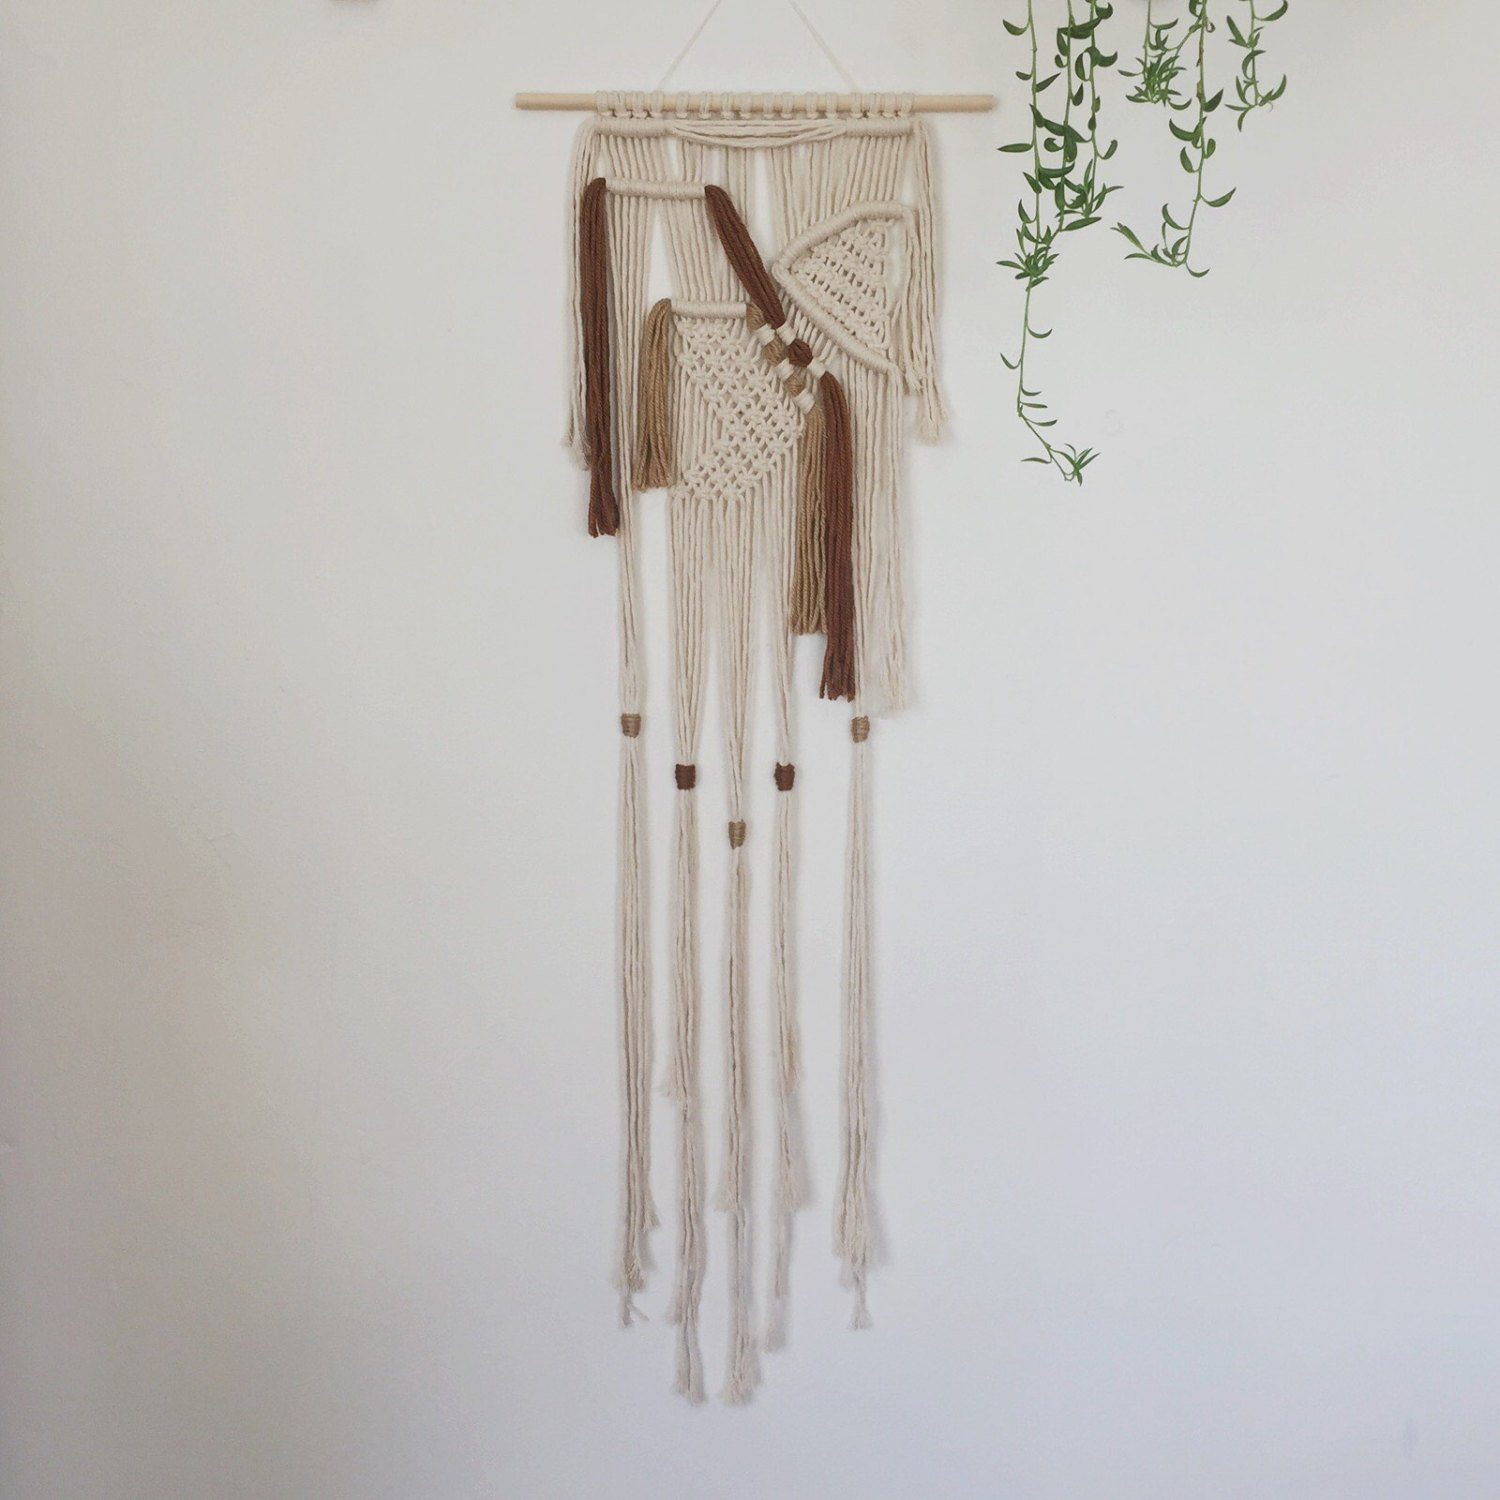 Handcrafted Macrame Wall Hangings - Shay by The Little Avocado